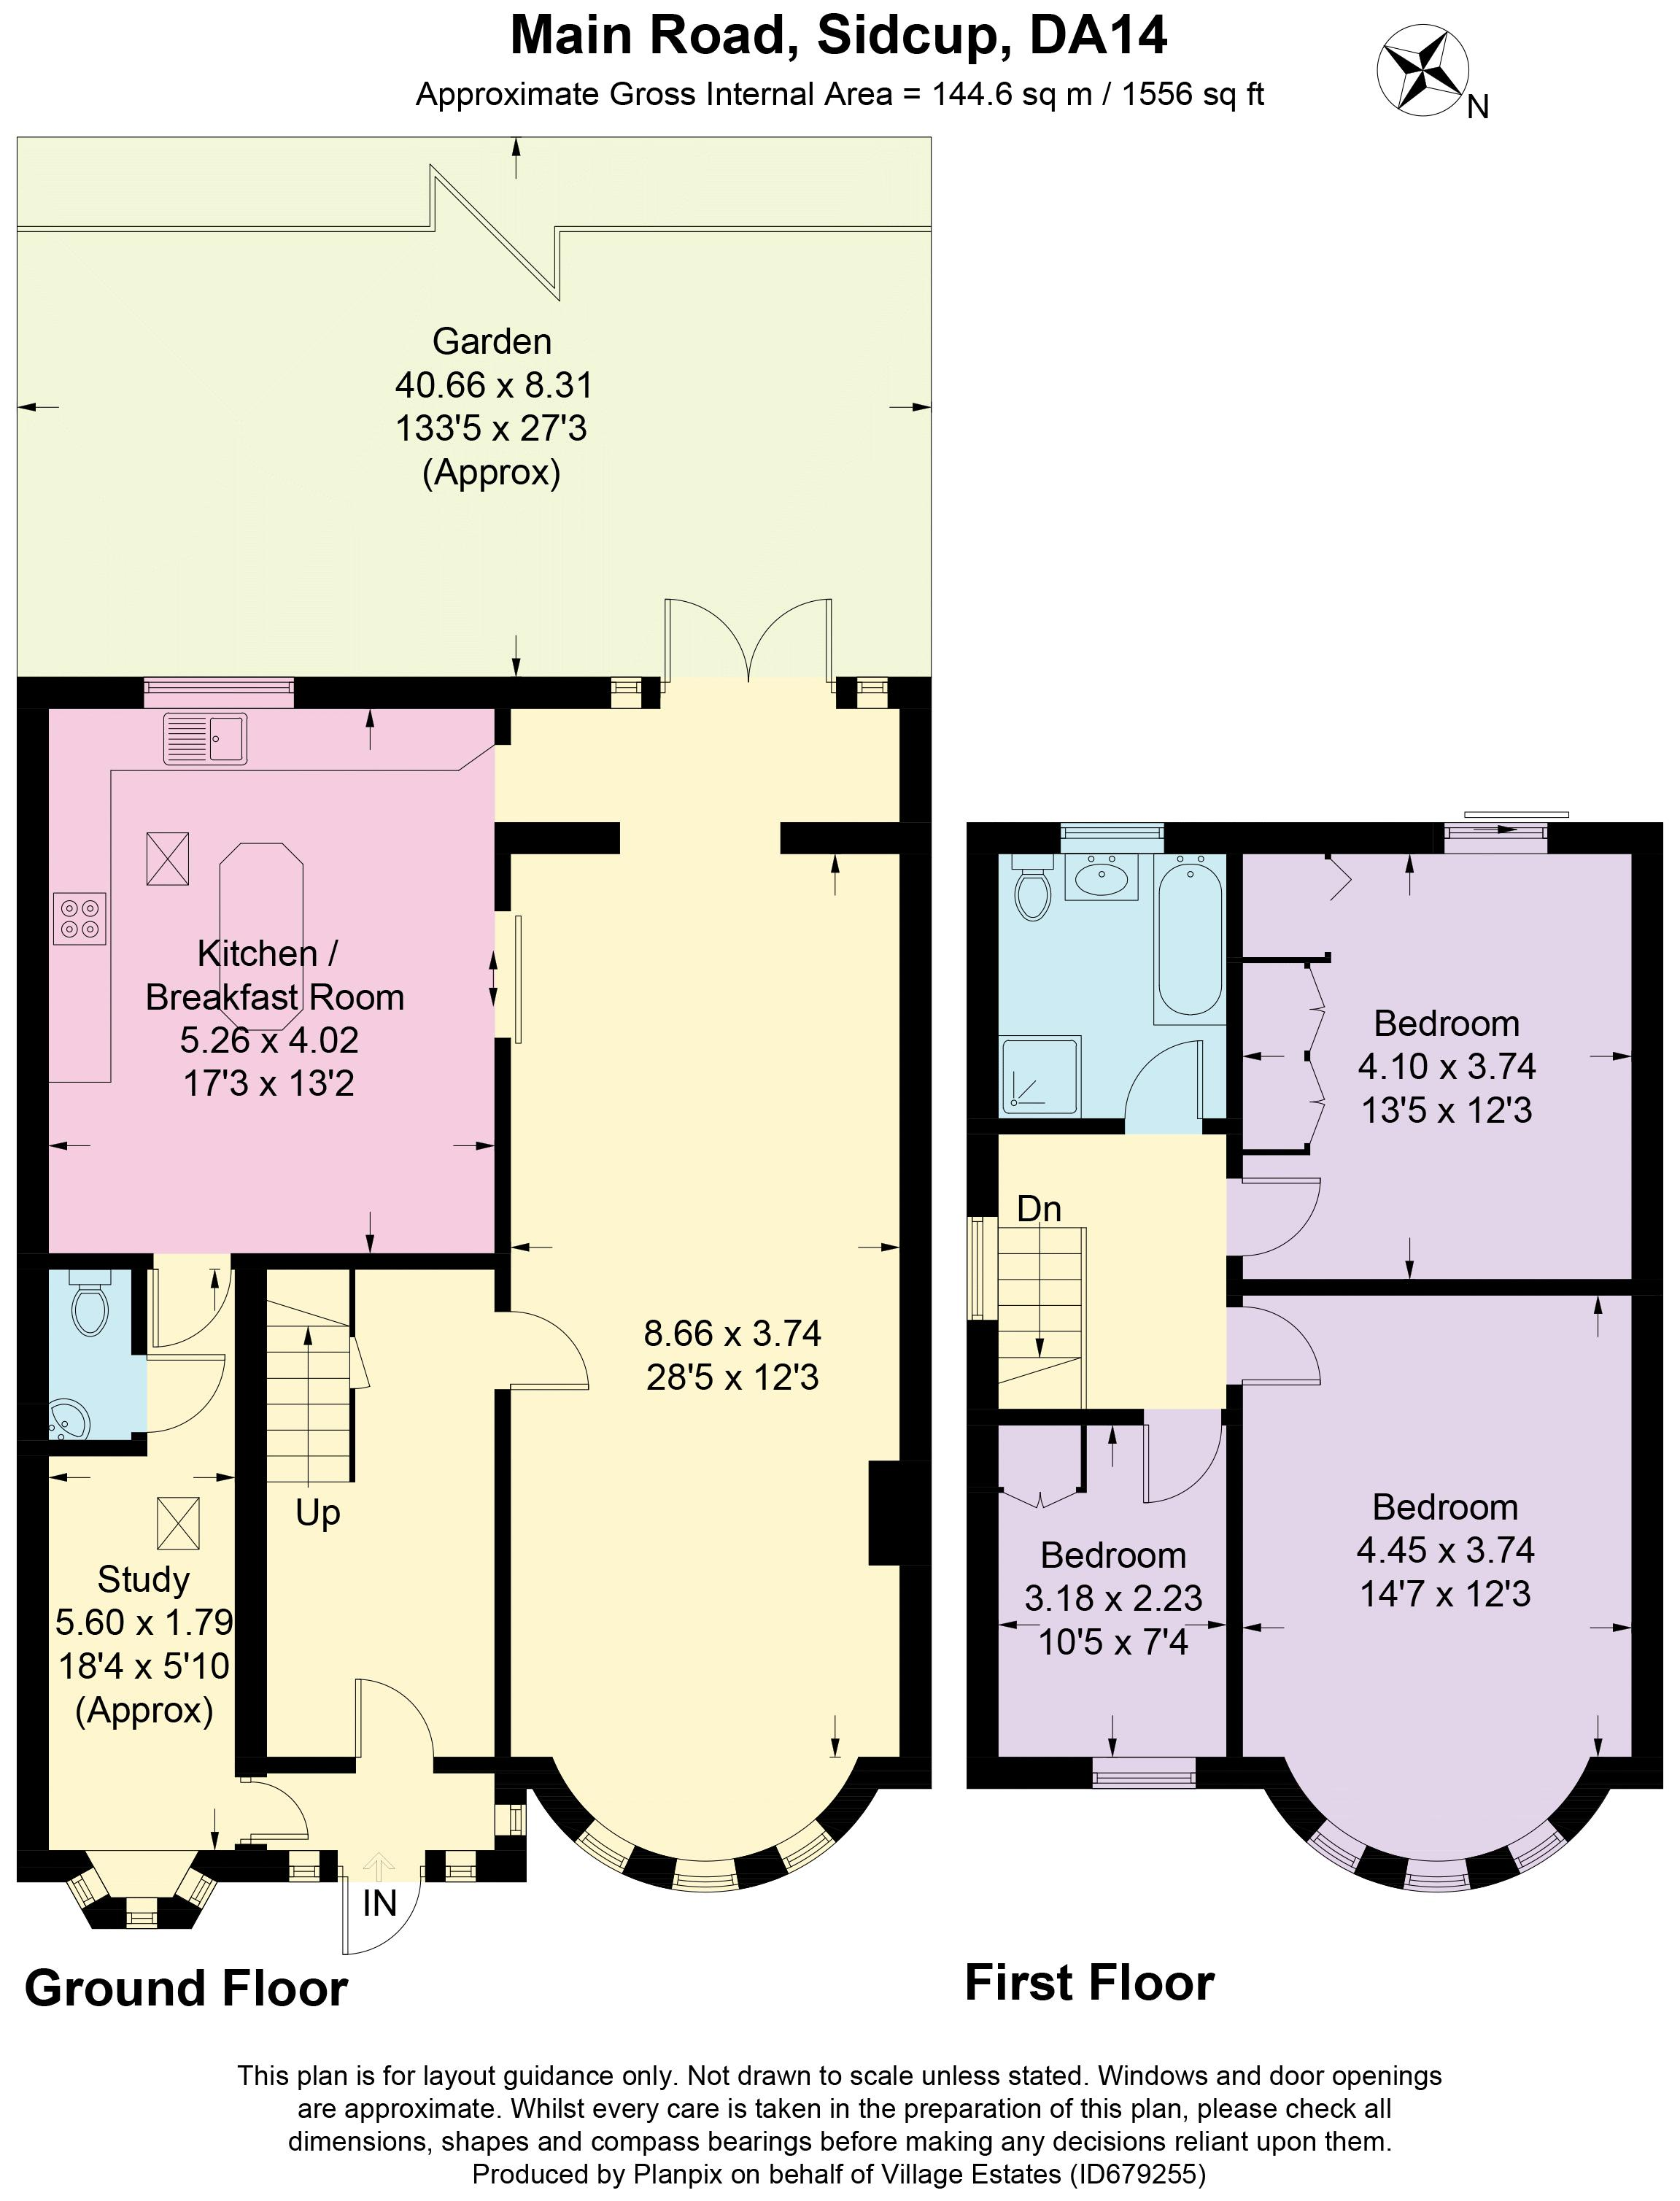 Main Road Floorplan